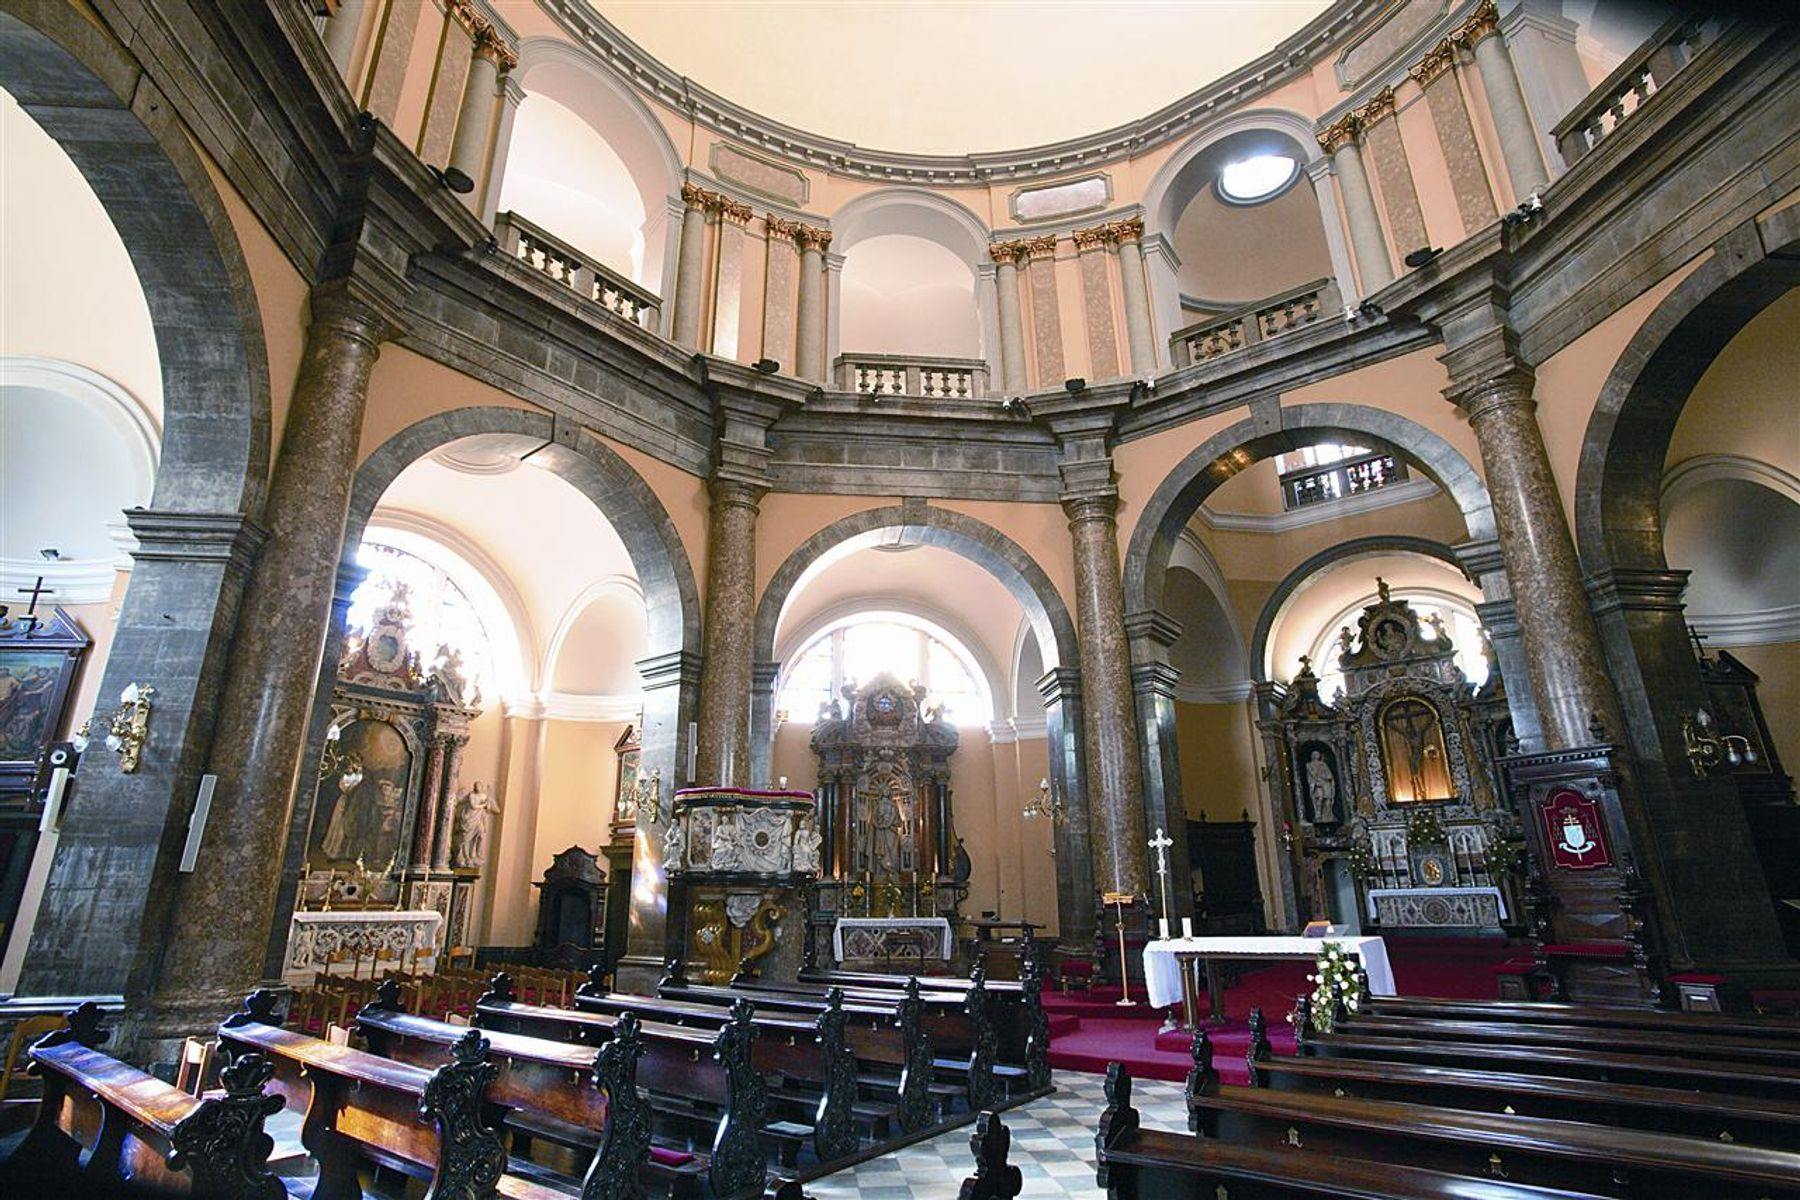 Photo shows the interior of Rijeka Cathedral in Croatia, showing the ornate interior design of marble arches and wooden pews, with a domed ceiling,